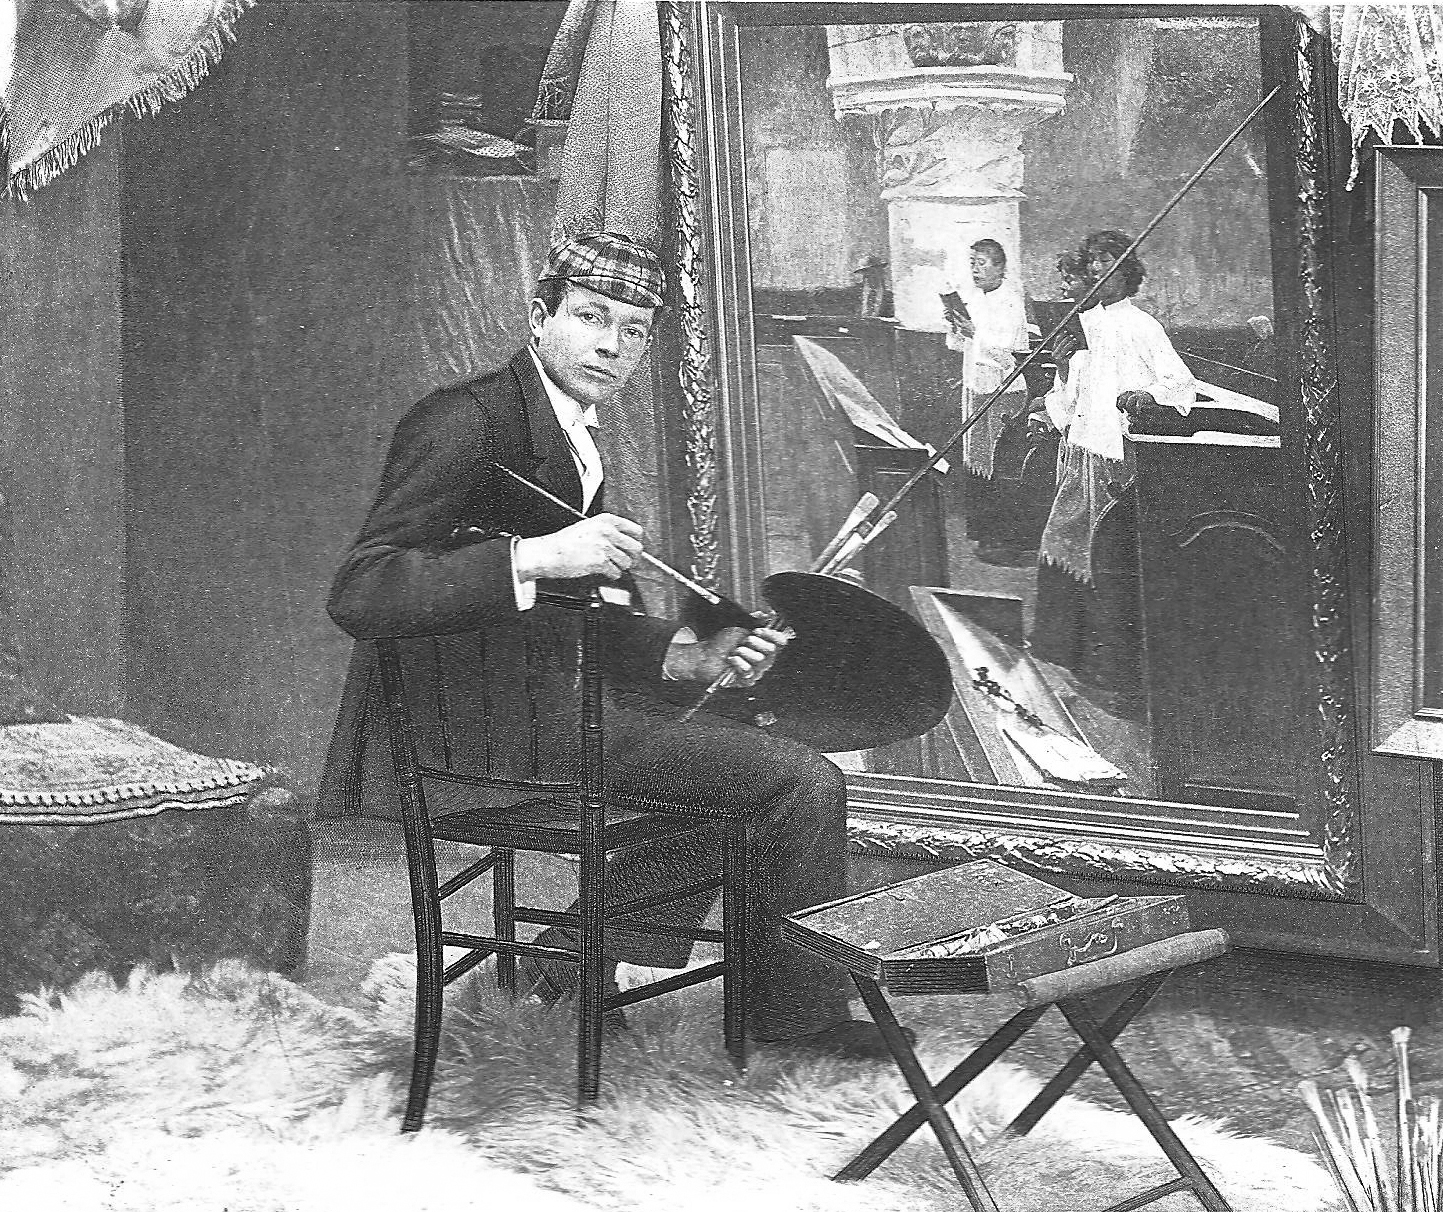 26fdumond-my-father-was-much-plagued-with-apprentices-who-thought-they-were-geniuses-because-they-were-idle-one-i-remember-did-nothing-but-draw-and-paint-he-was-the-first-i-ever-saw-paint-in-oil